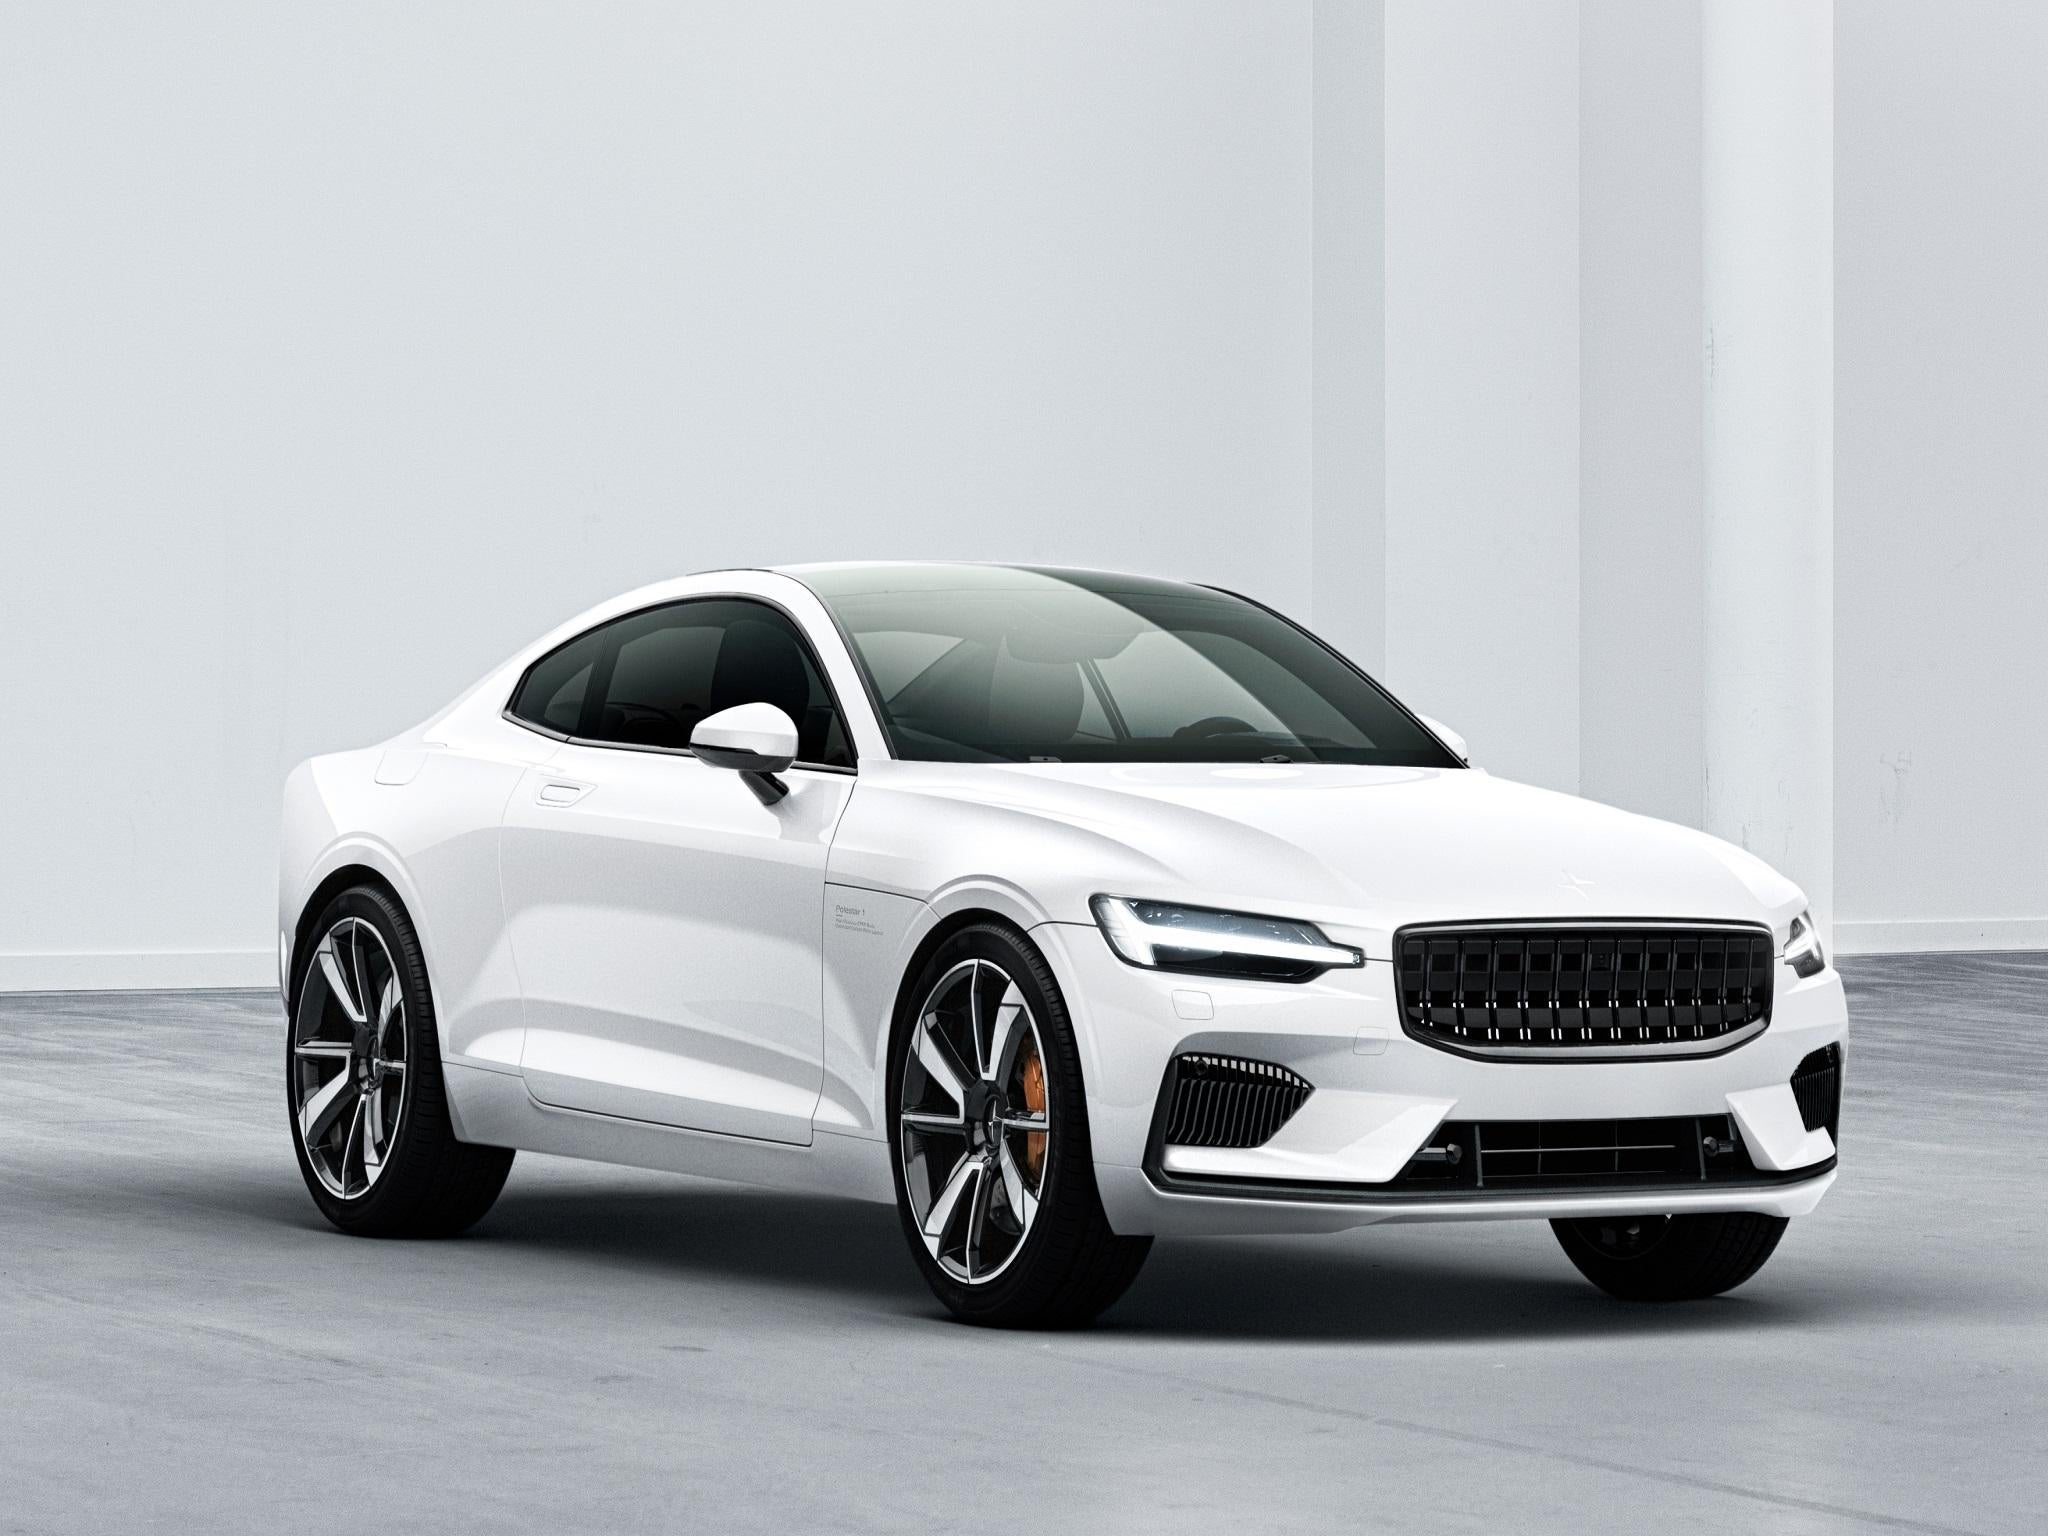 polestar 1 sweden 39 s volvo and china 39 s geely unveil new electric sports car the independent. Black Bedroom Furniture Sets. Home Design Ideas